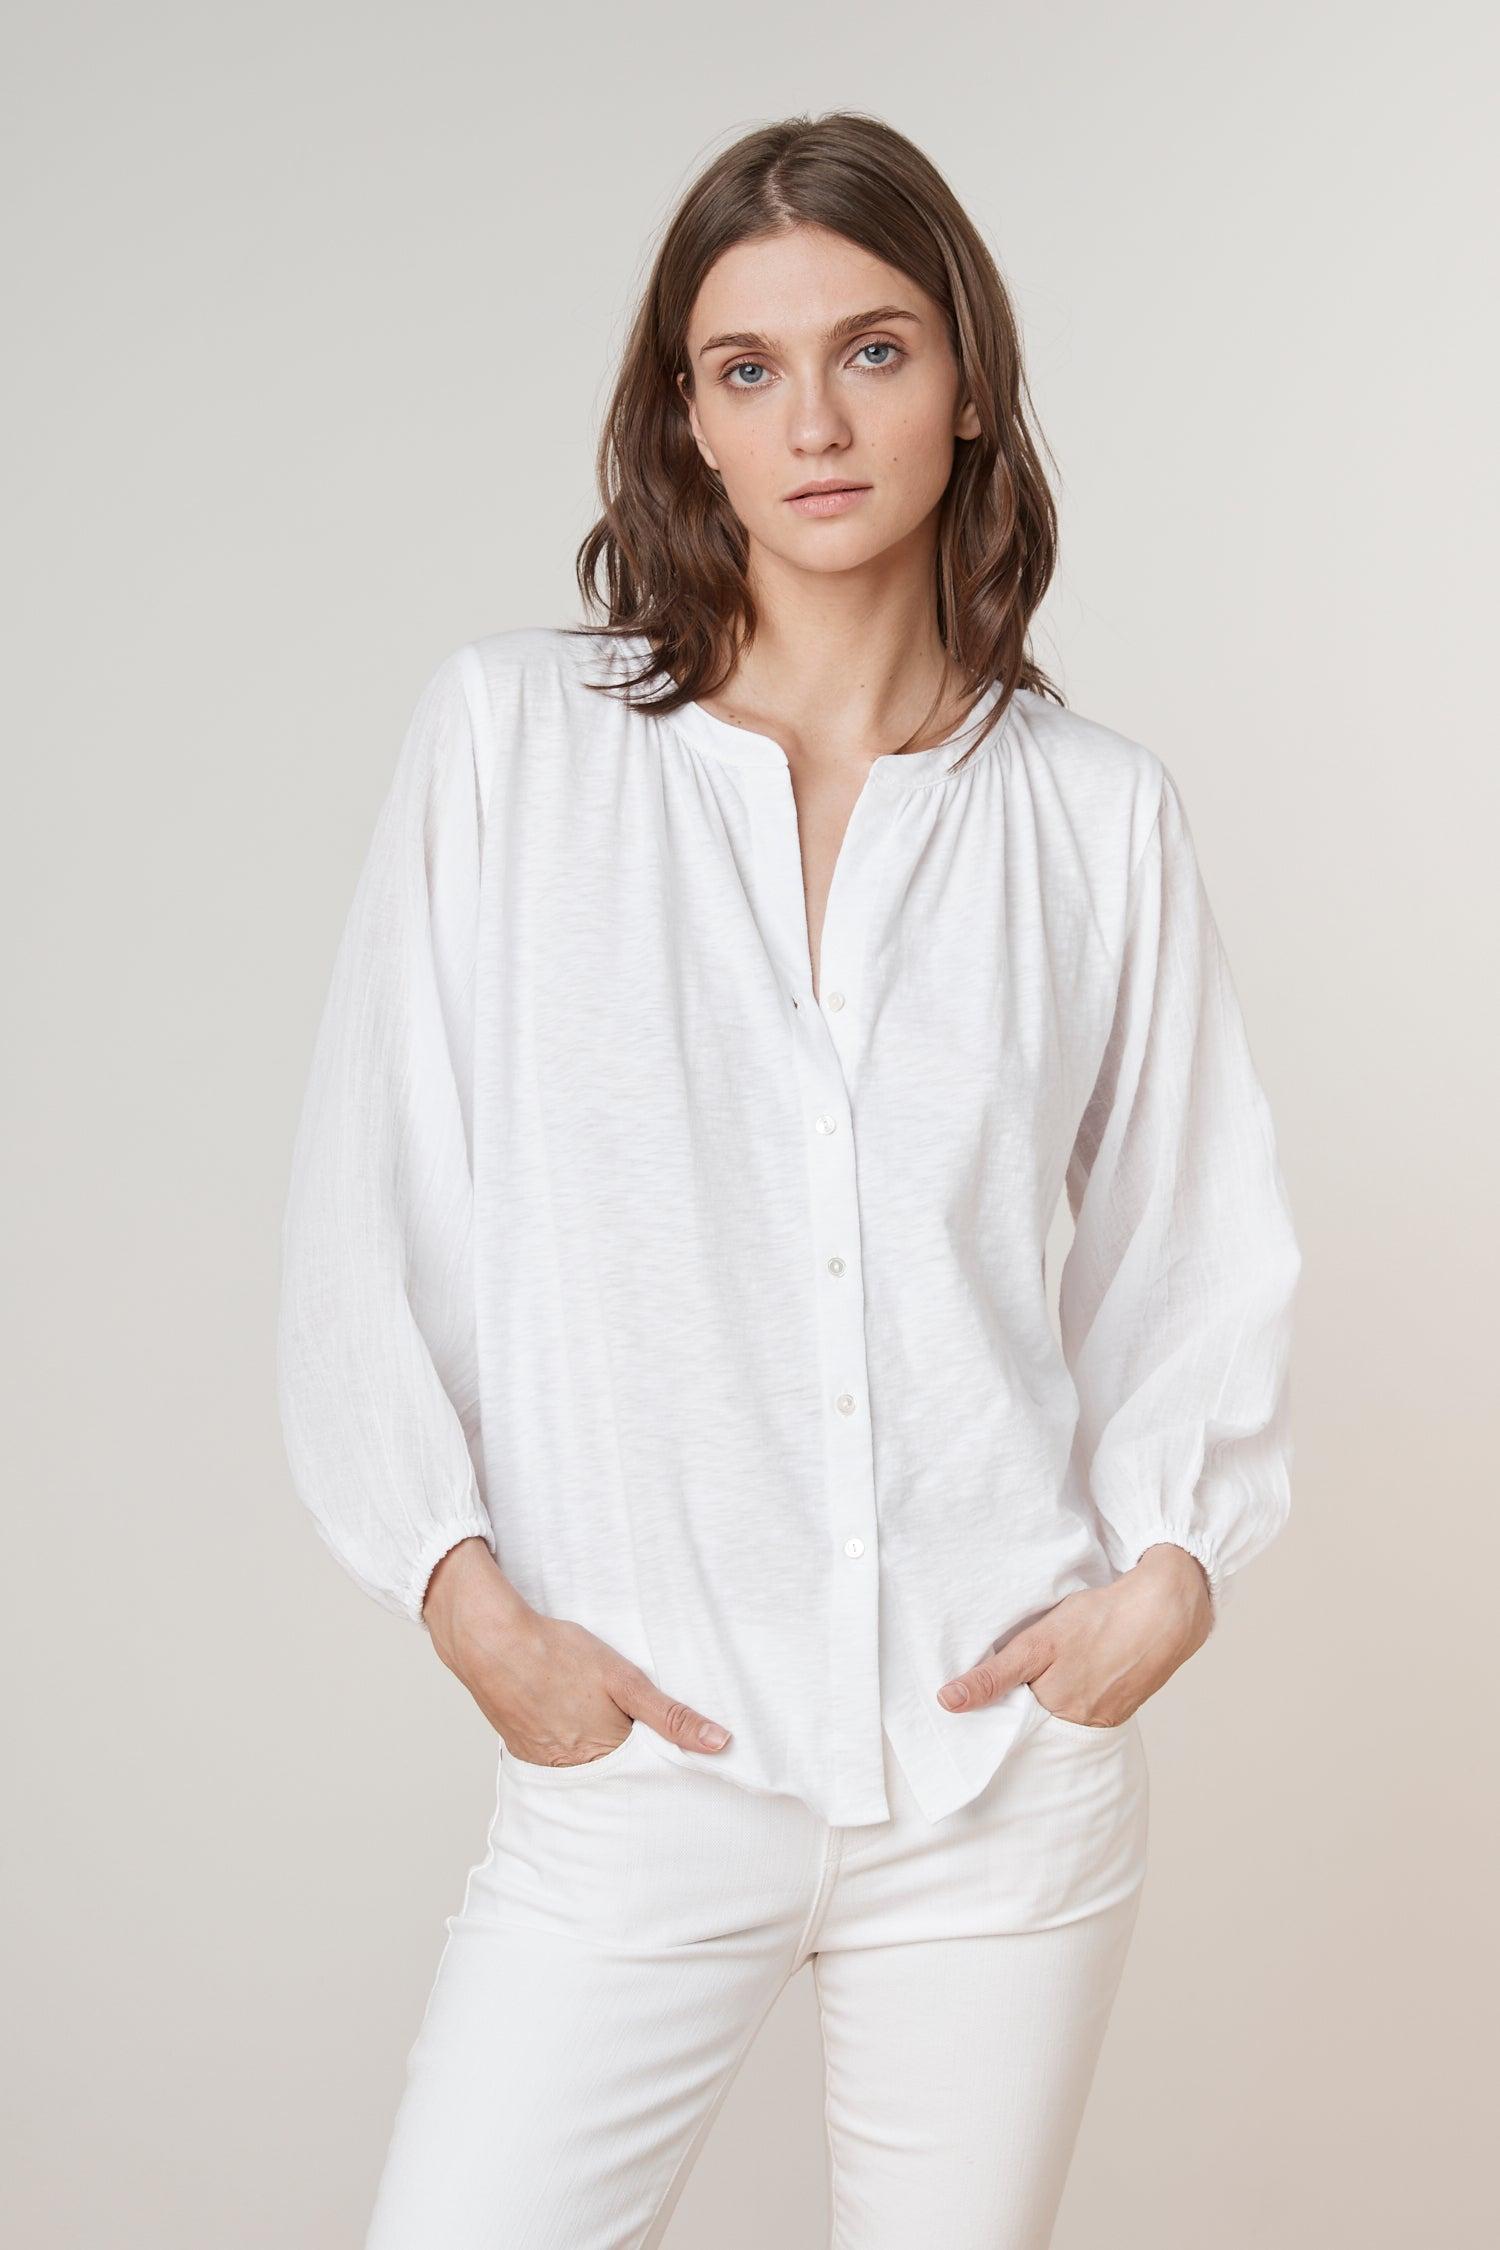 HAYES COTTON CONTRAST BUTTON UP TEE IN WHITE